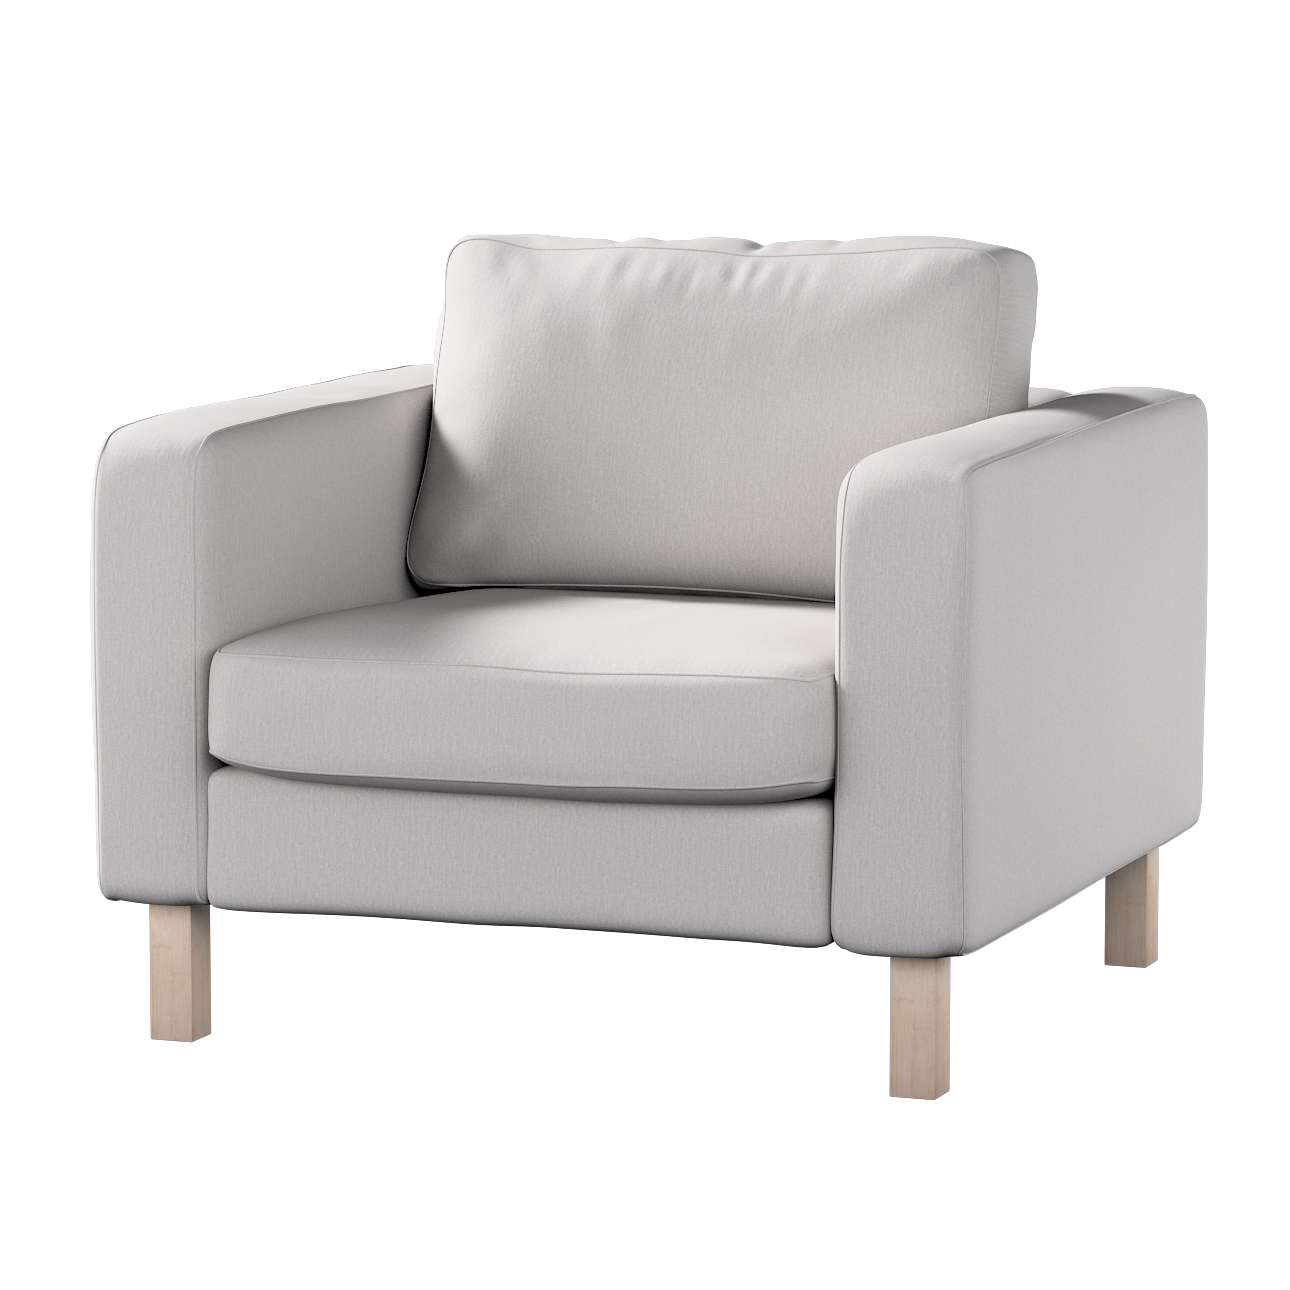 Karlstad armchair cover Karlstad armchair cover in collection Chenille, fabric: 702-23